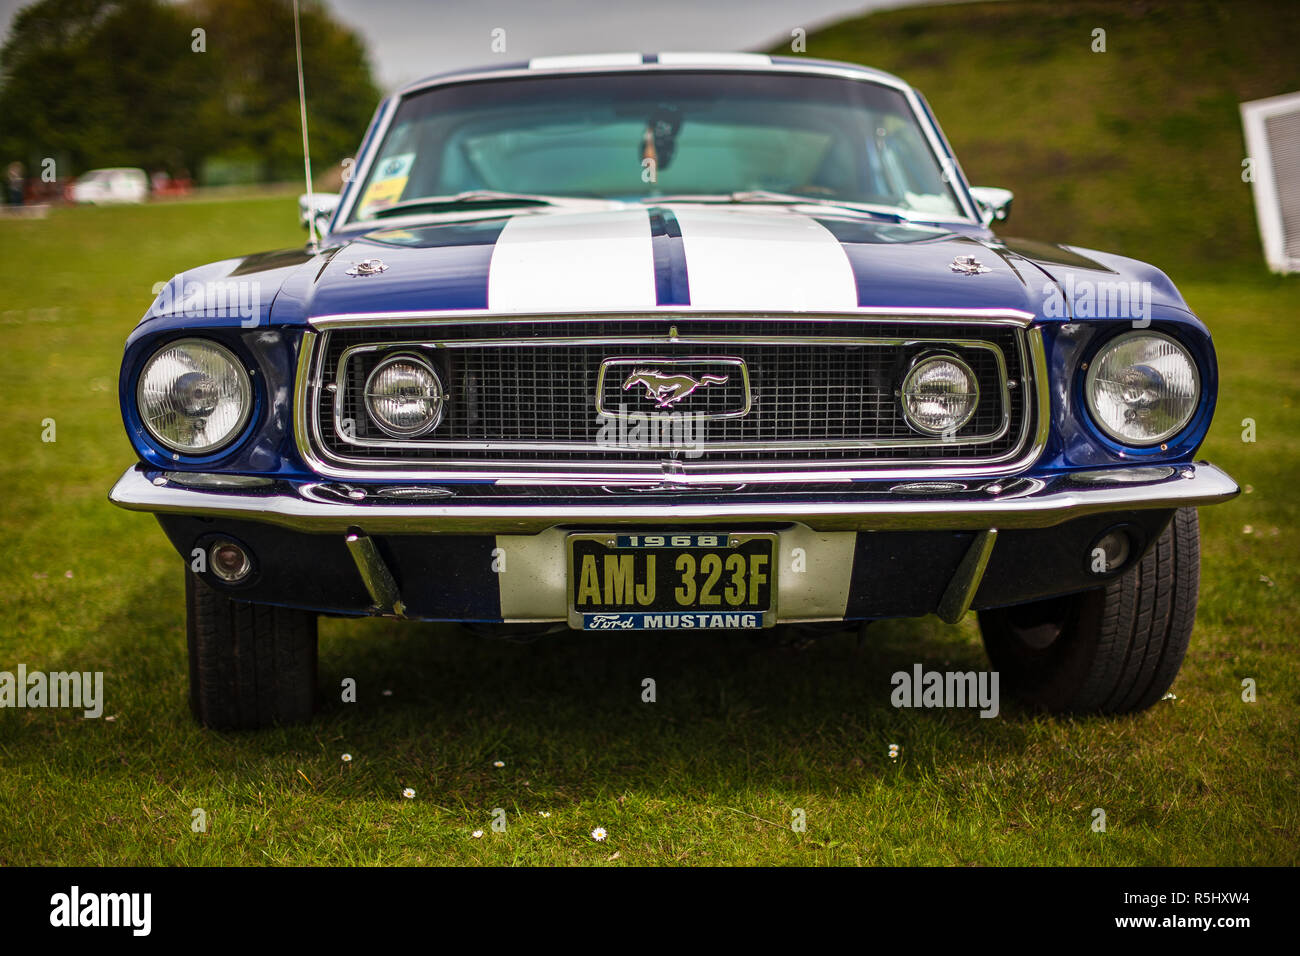 Ford mustang 1967 8 uk stock image